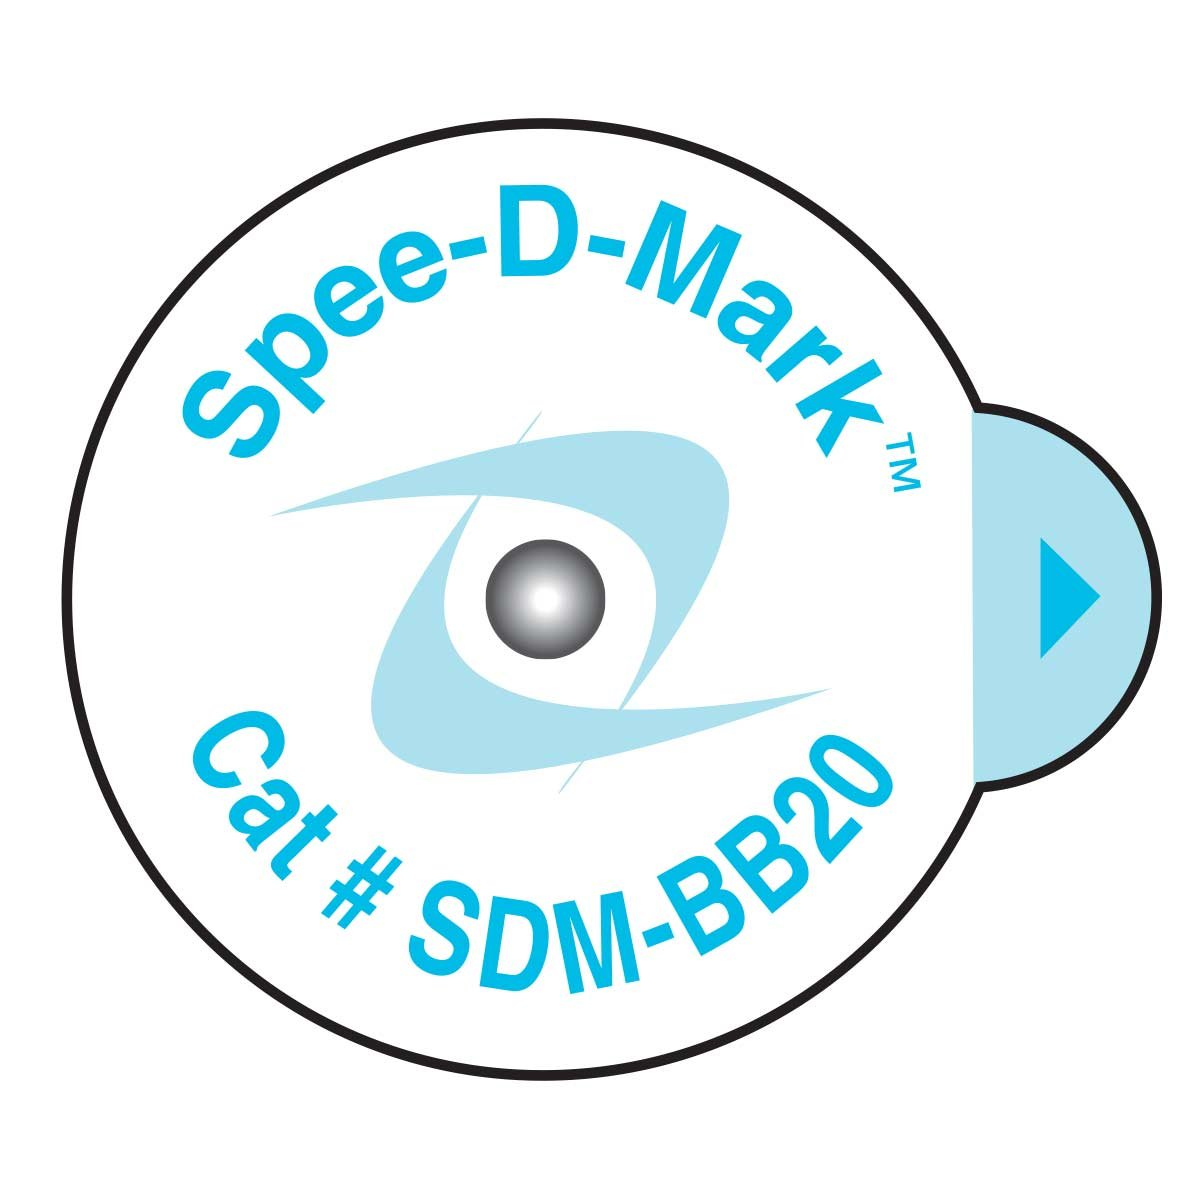 Spee-D-Mark SDM-BB20 Mammography Skin Marker Nipple Radiopaque, 2.0 mm Size (Box of 100)